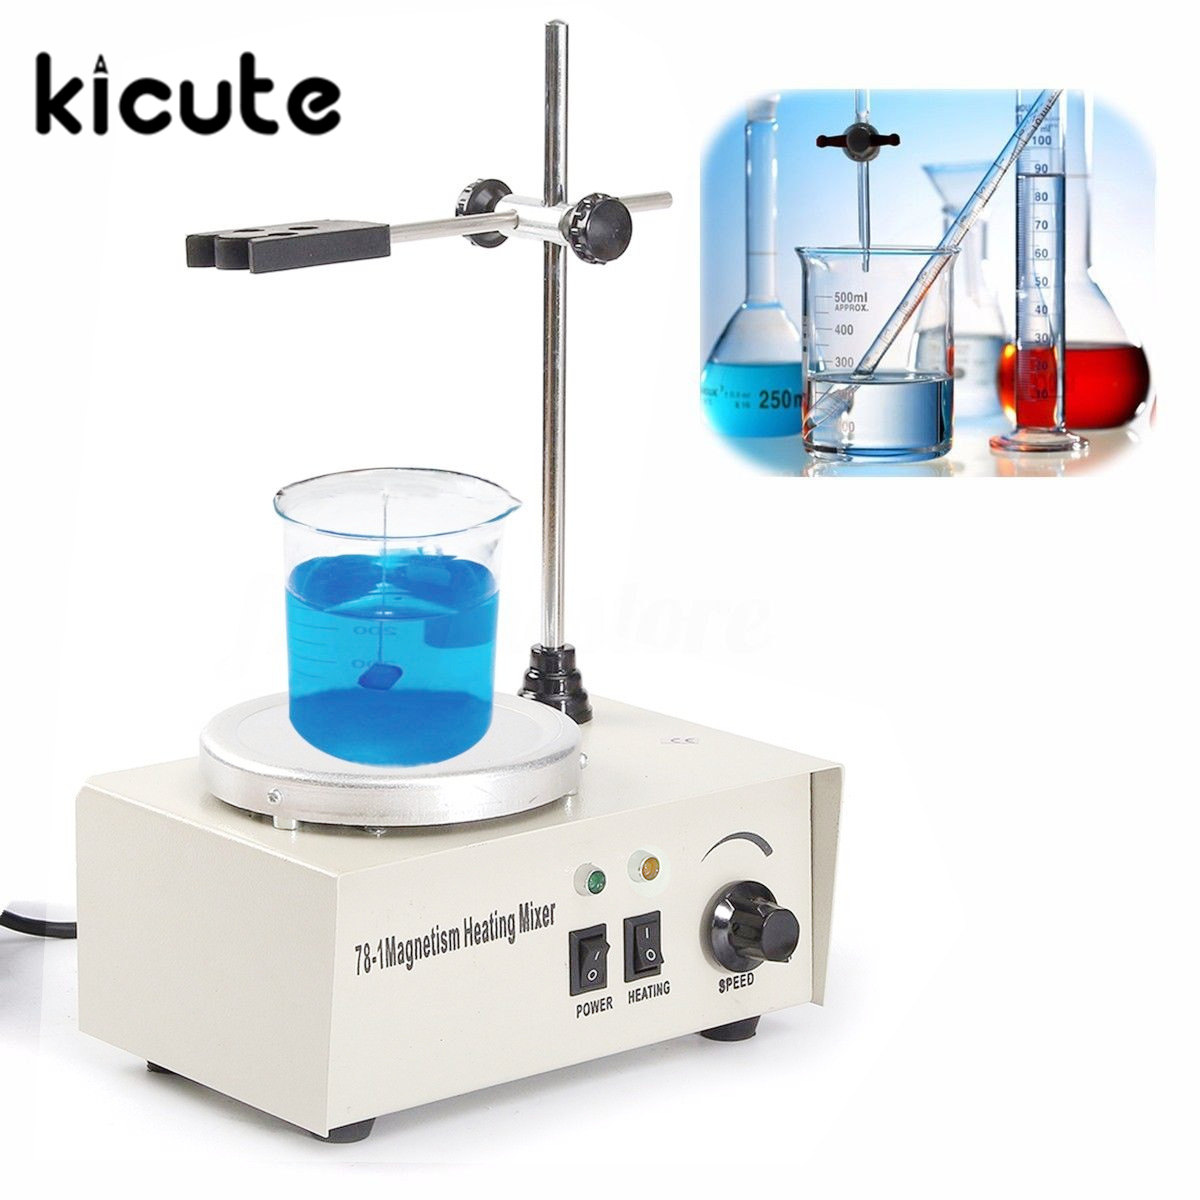 KiCute Laboratory Heating Equipment 1000ML Lab Magnetic Stirrer With Heating Plate Hotplate Mixer 110V Temperature Dispaly